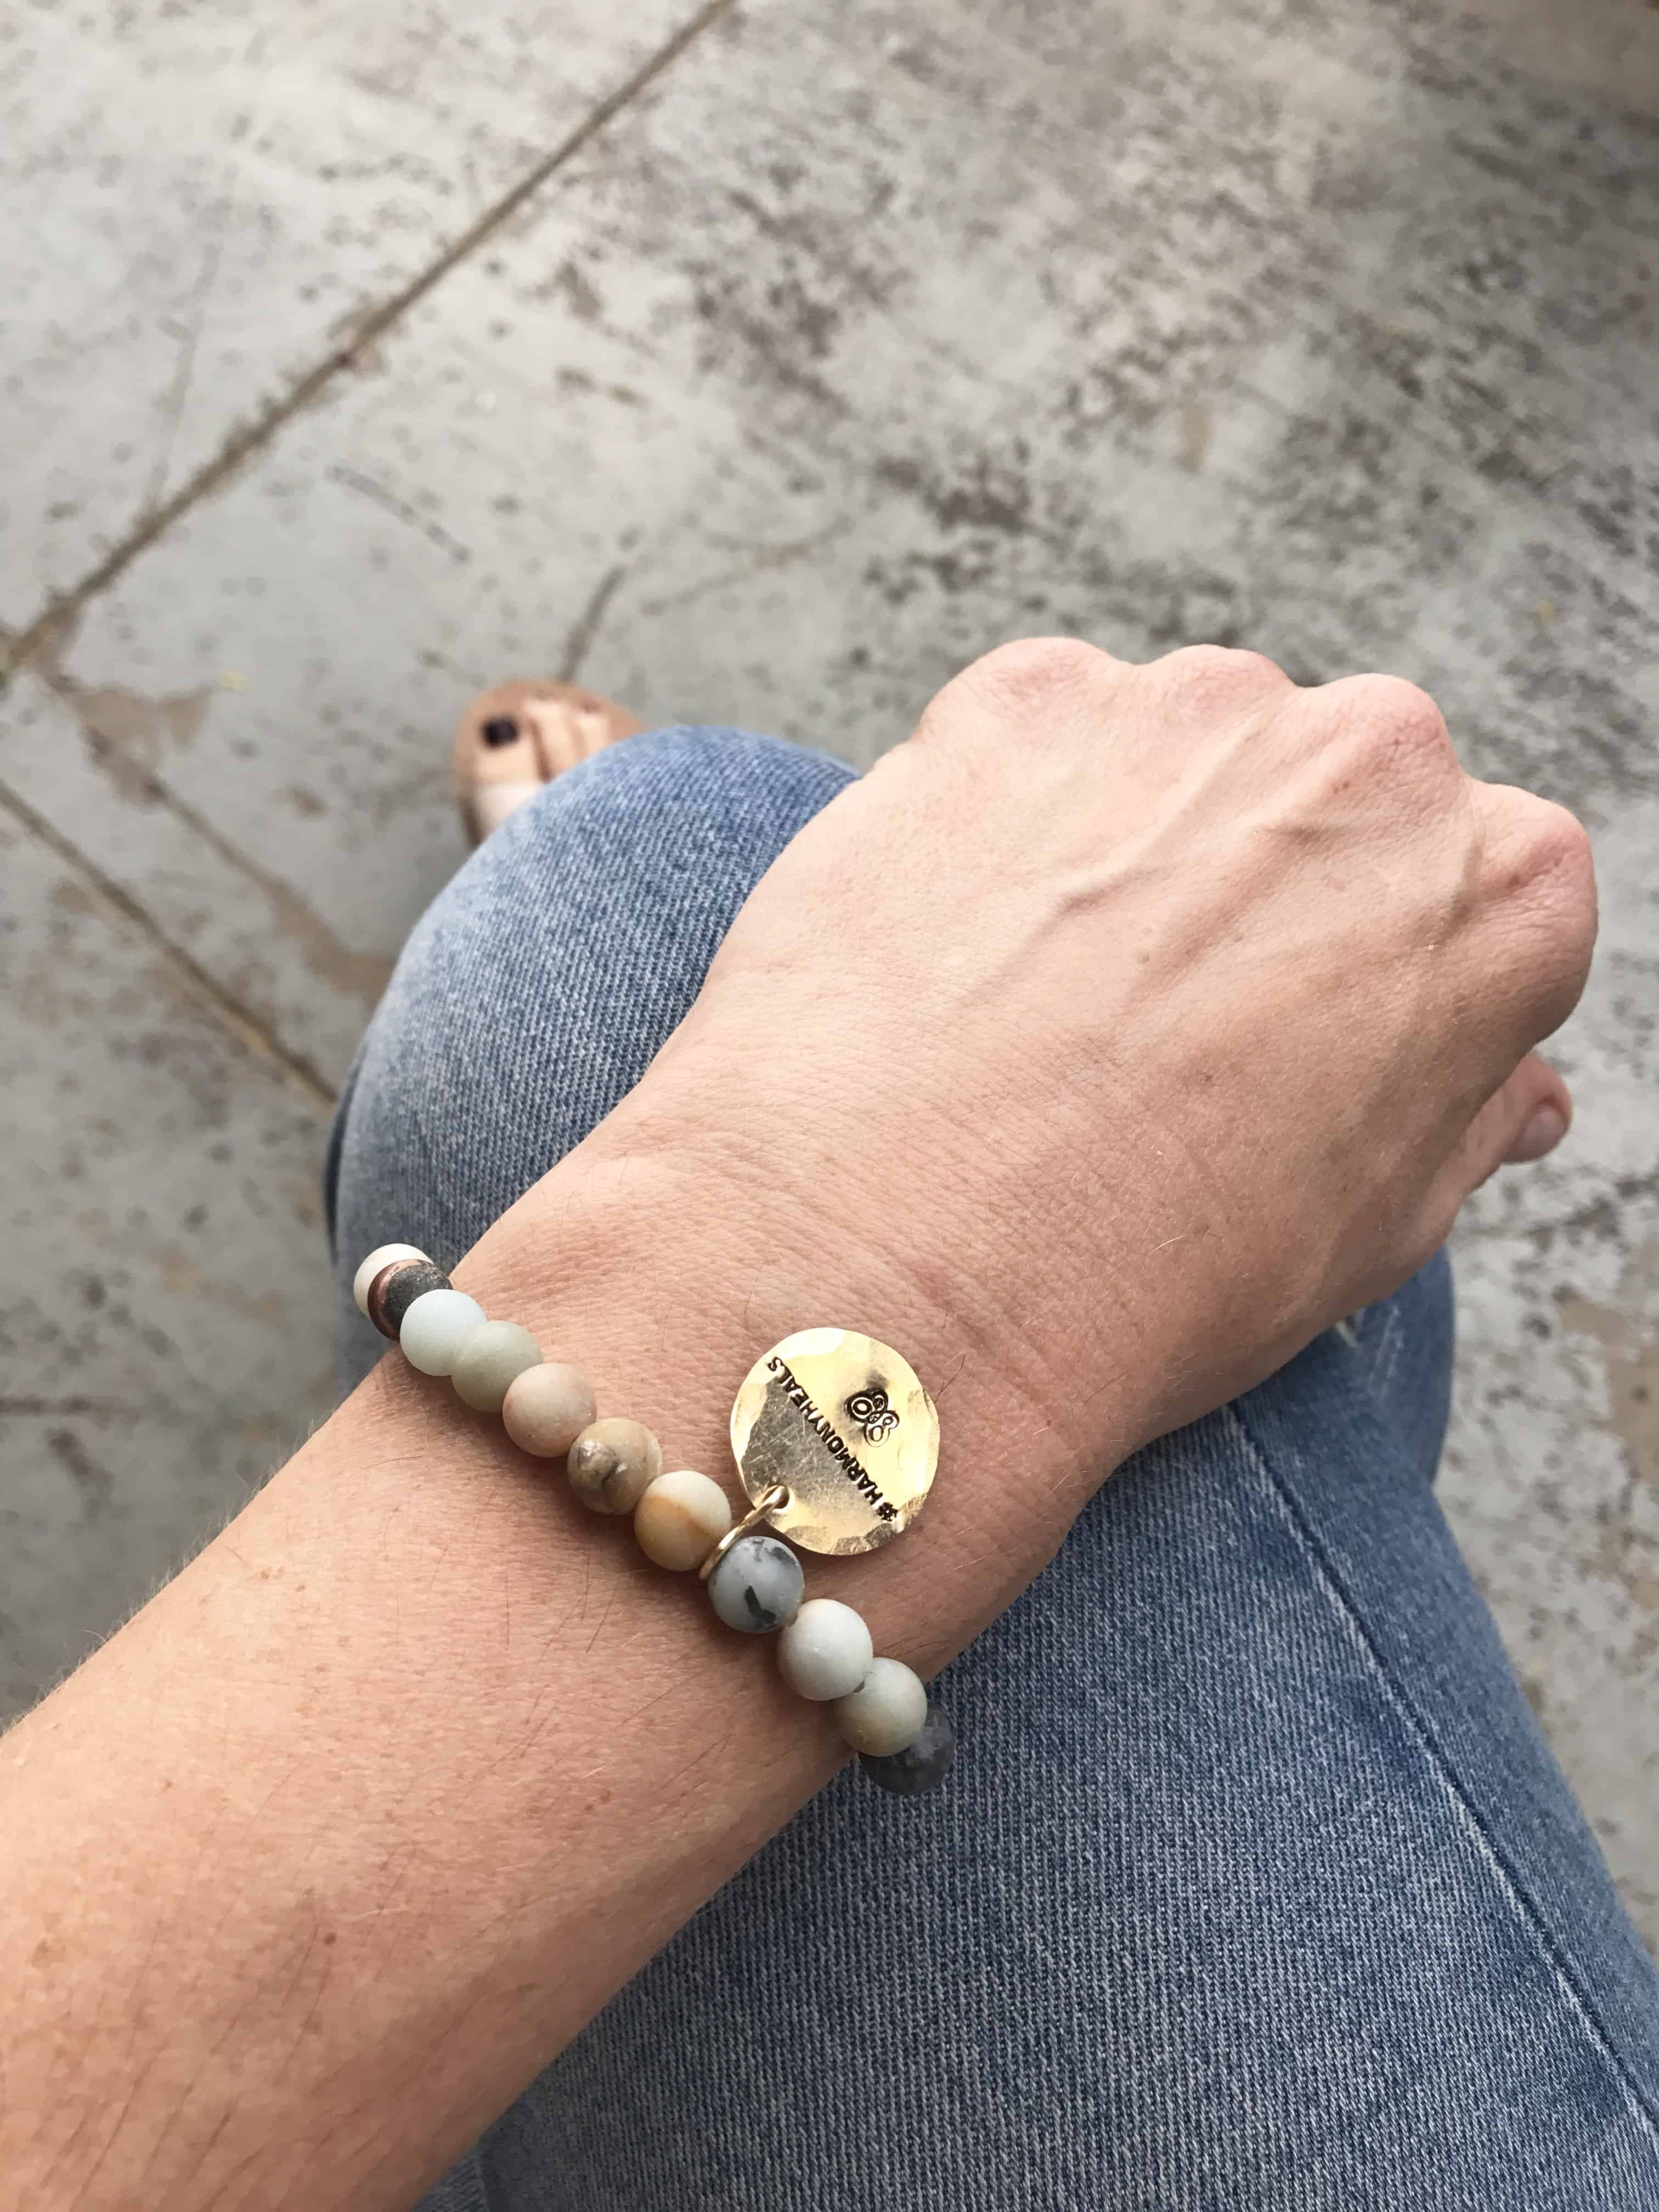 Mer-Made Jewelry Fundraiser